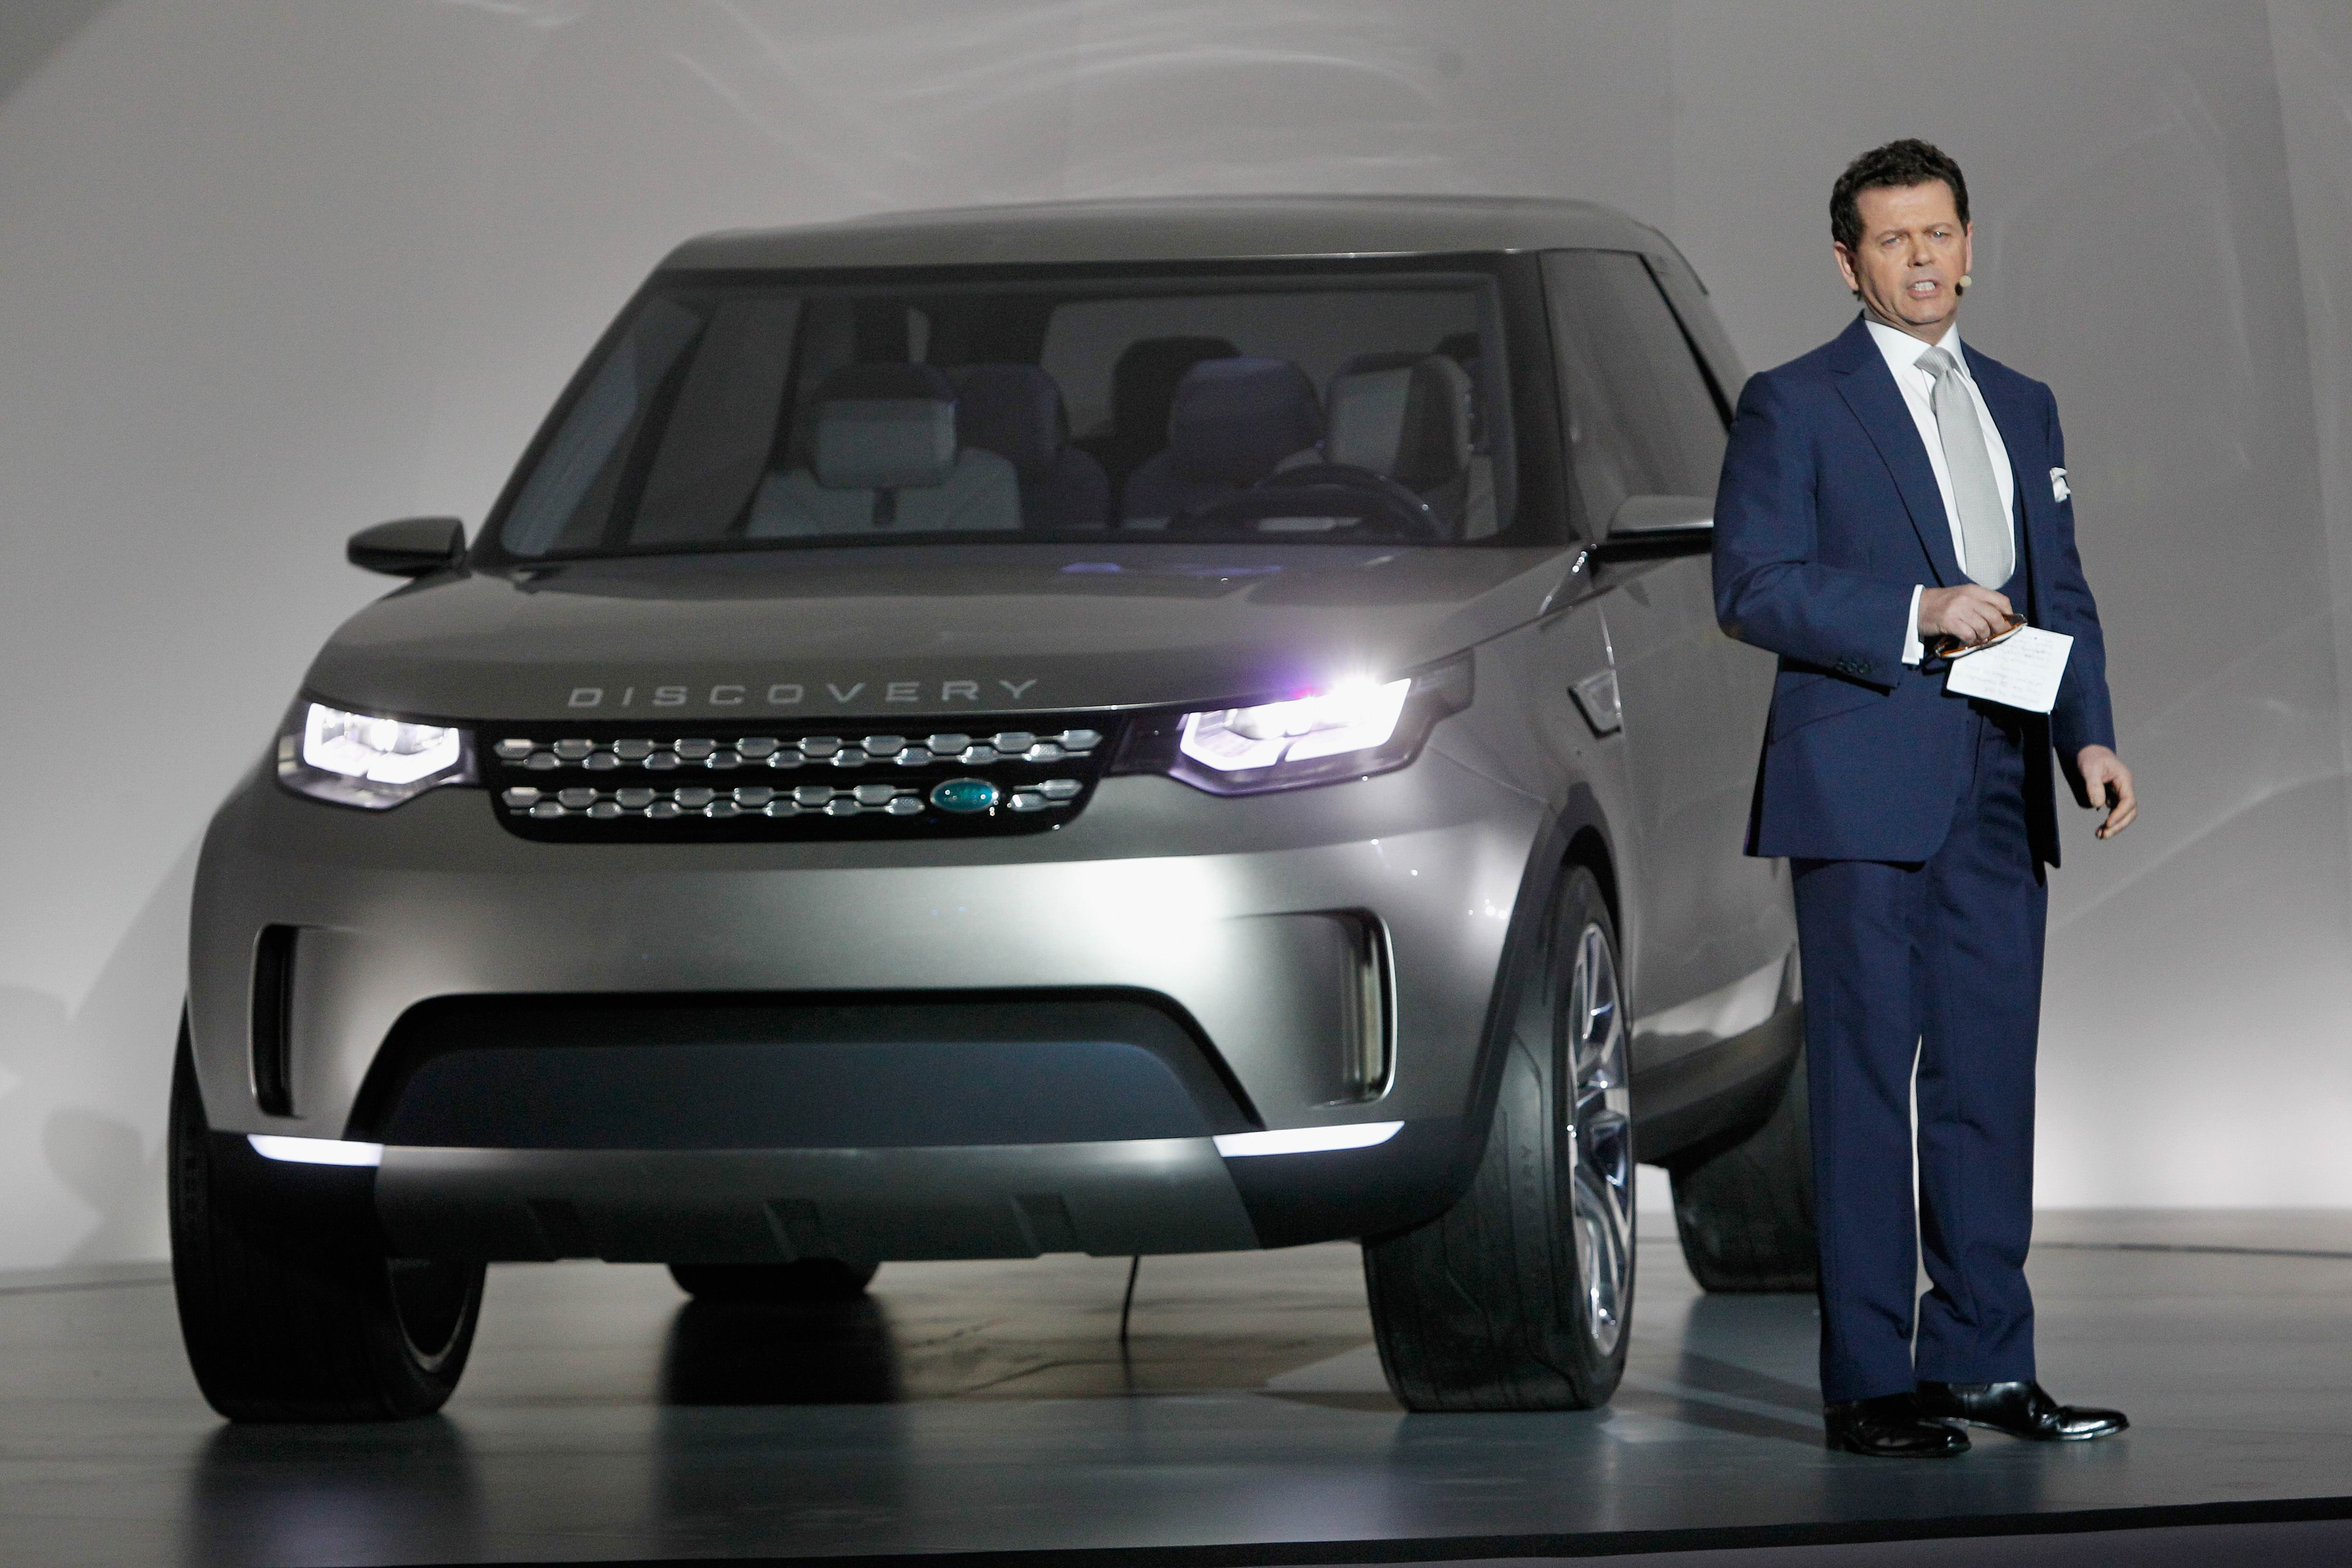 Land Rover Discovery – A Startling Discovery